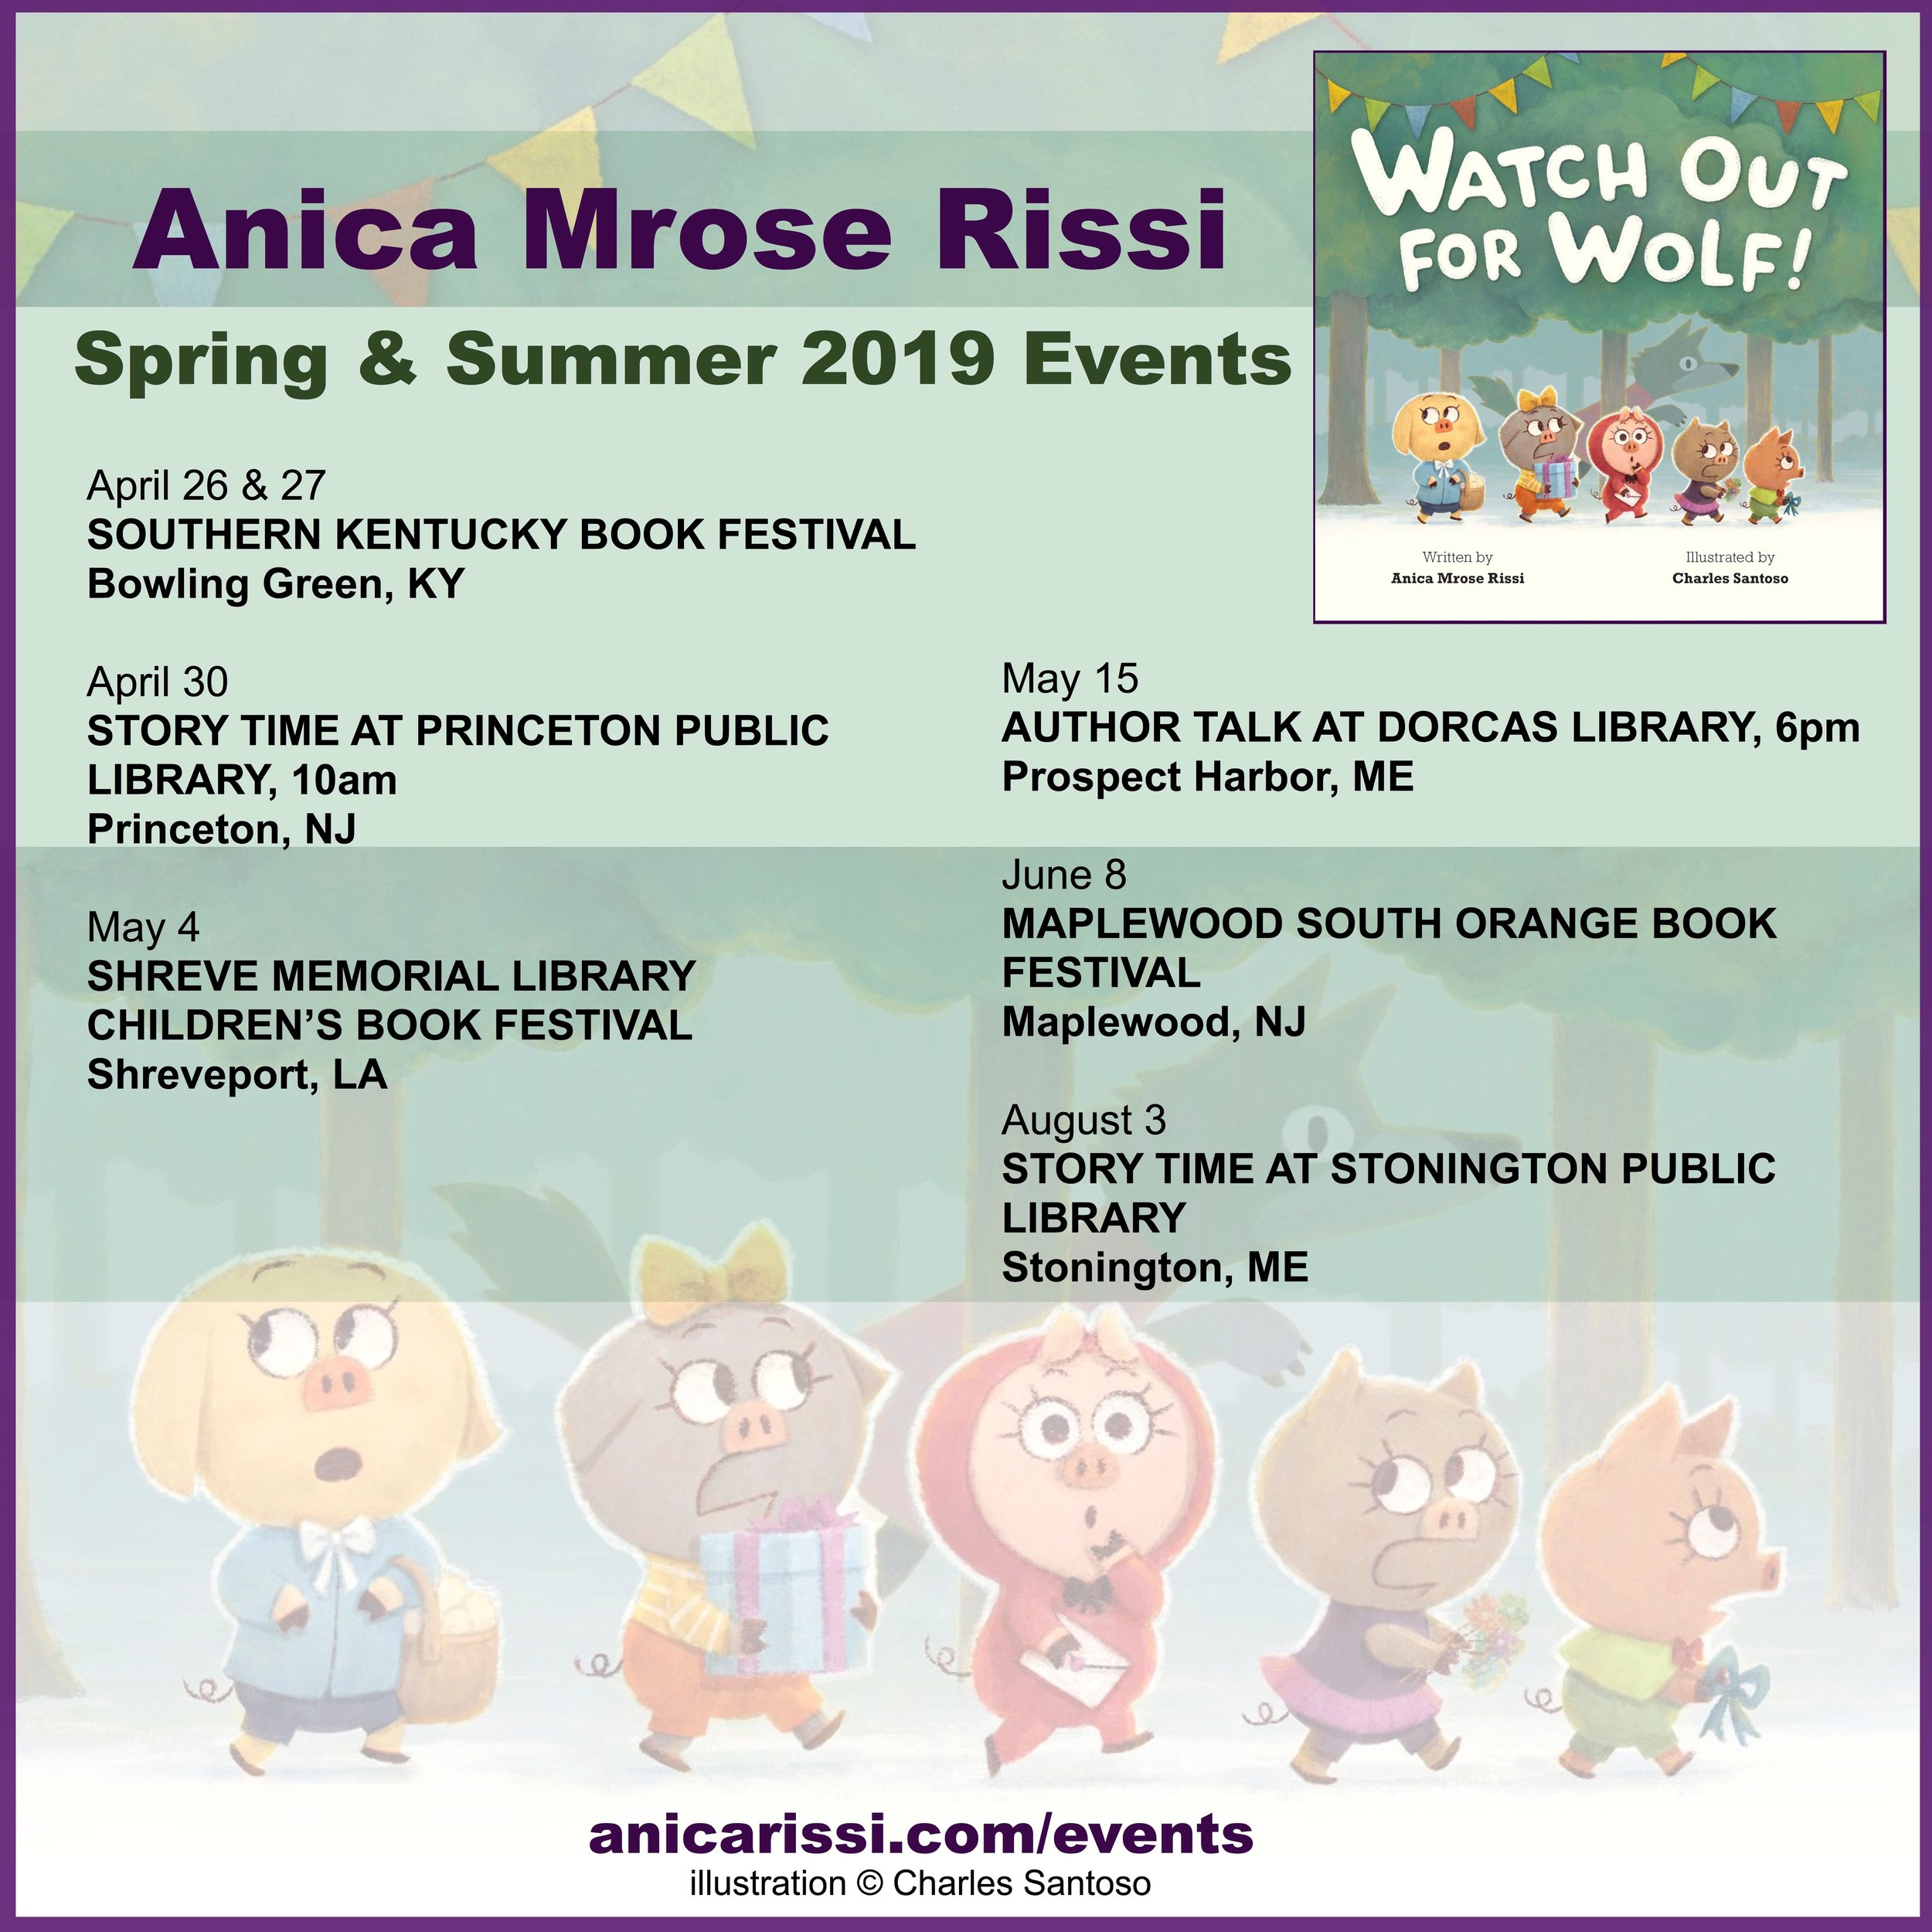 Anica Mrose Rissi spring & summer 2019 events.JPG